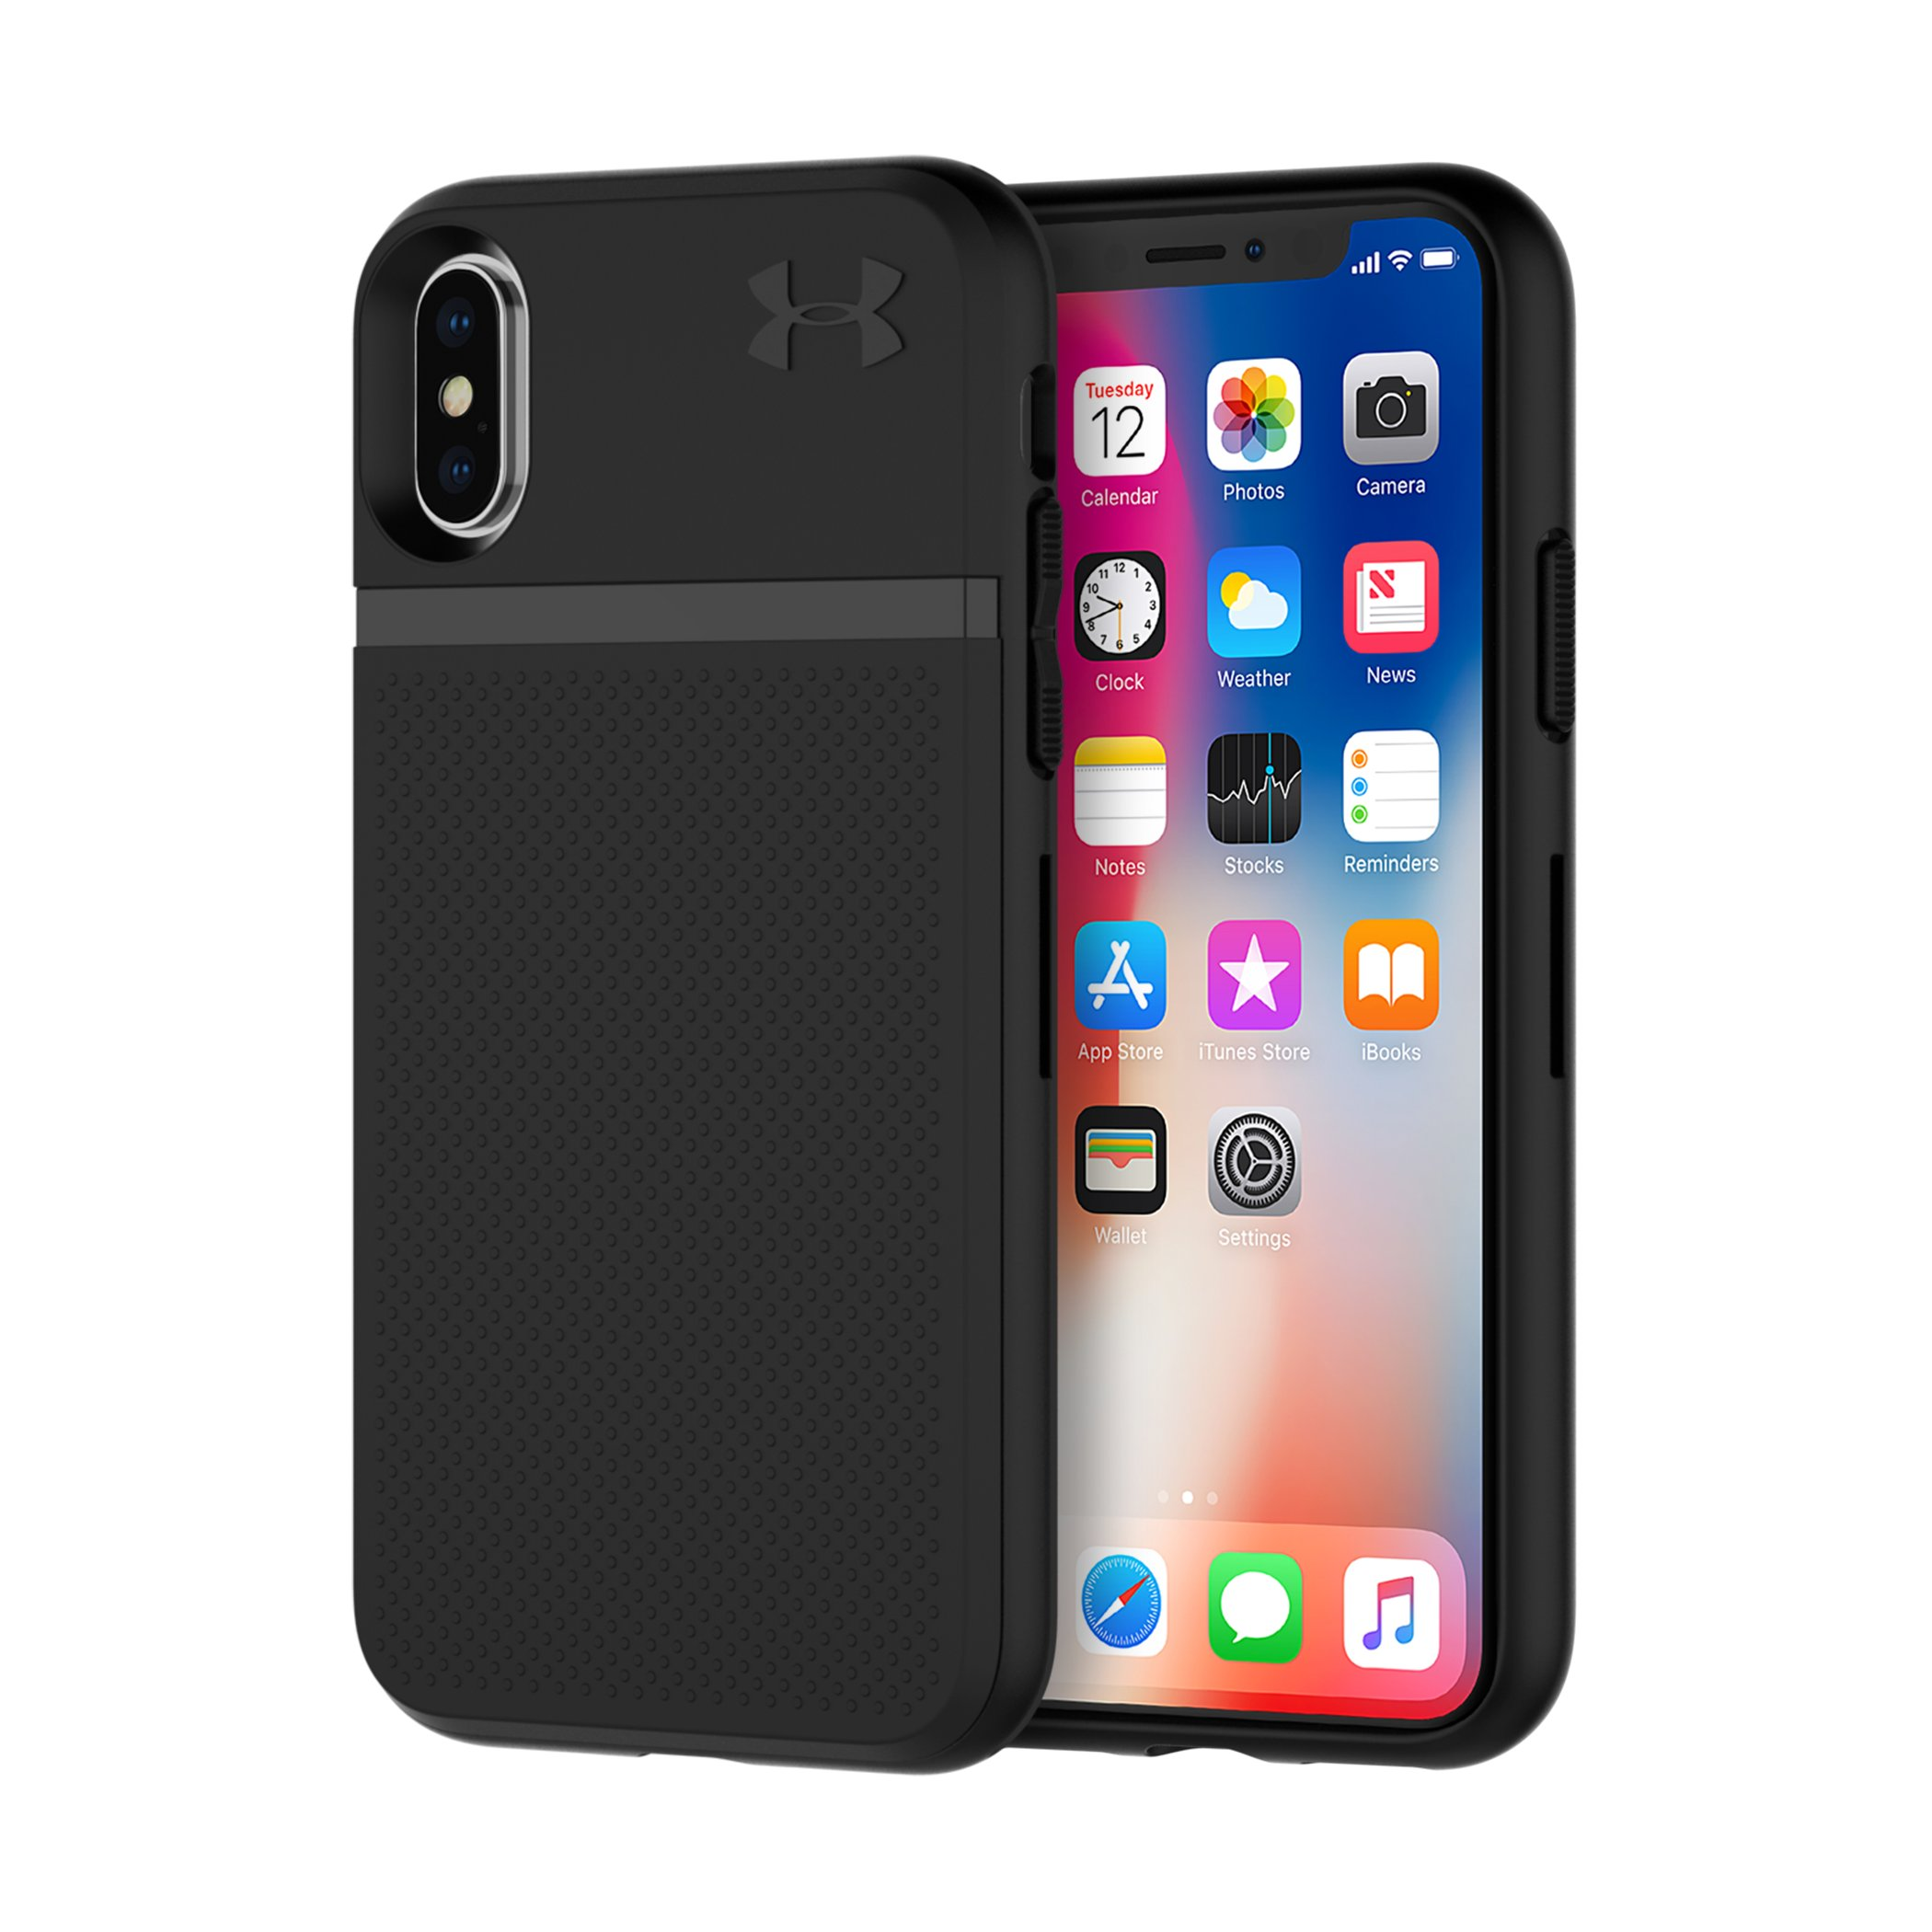 UA Protect Stash Case for iPhone X 2 Colors $44.99